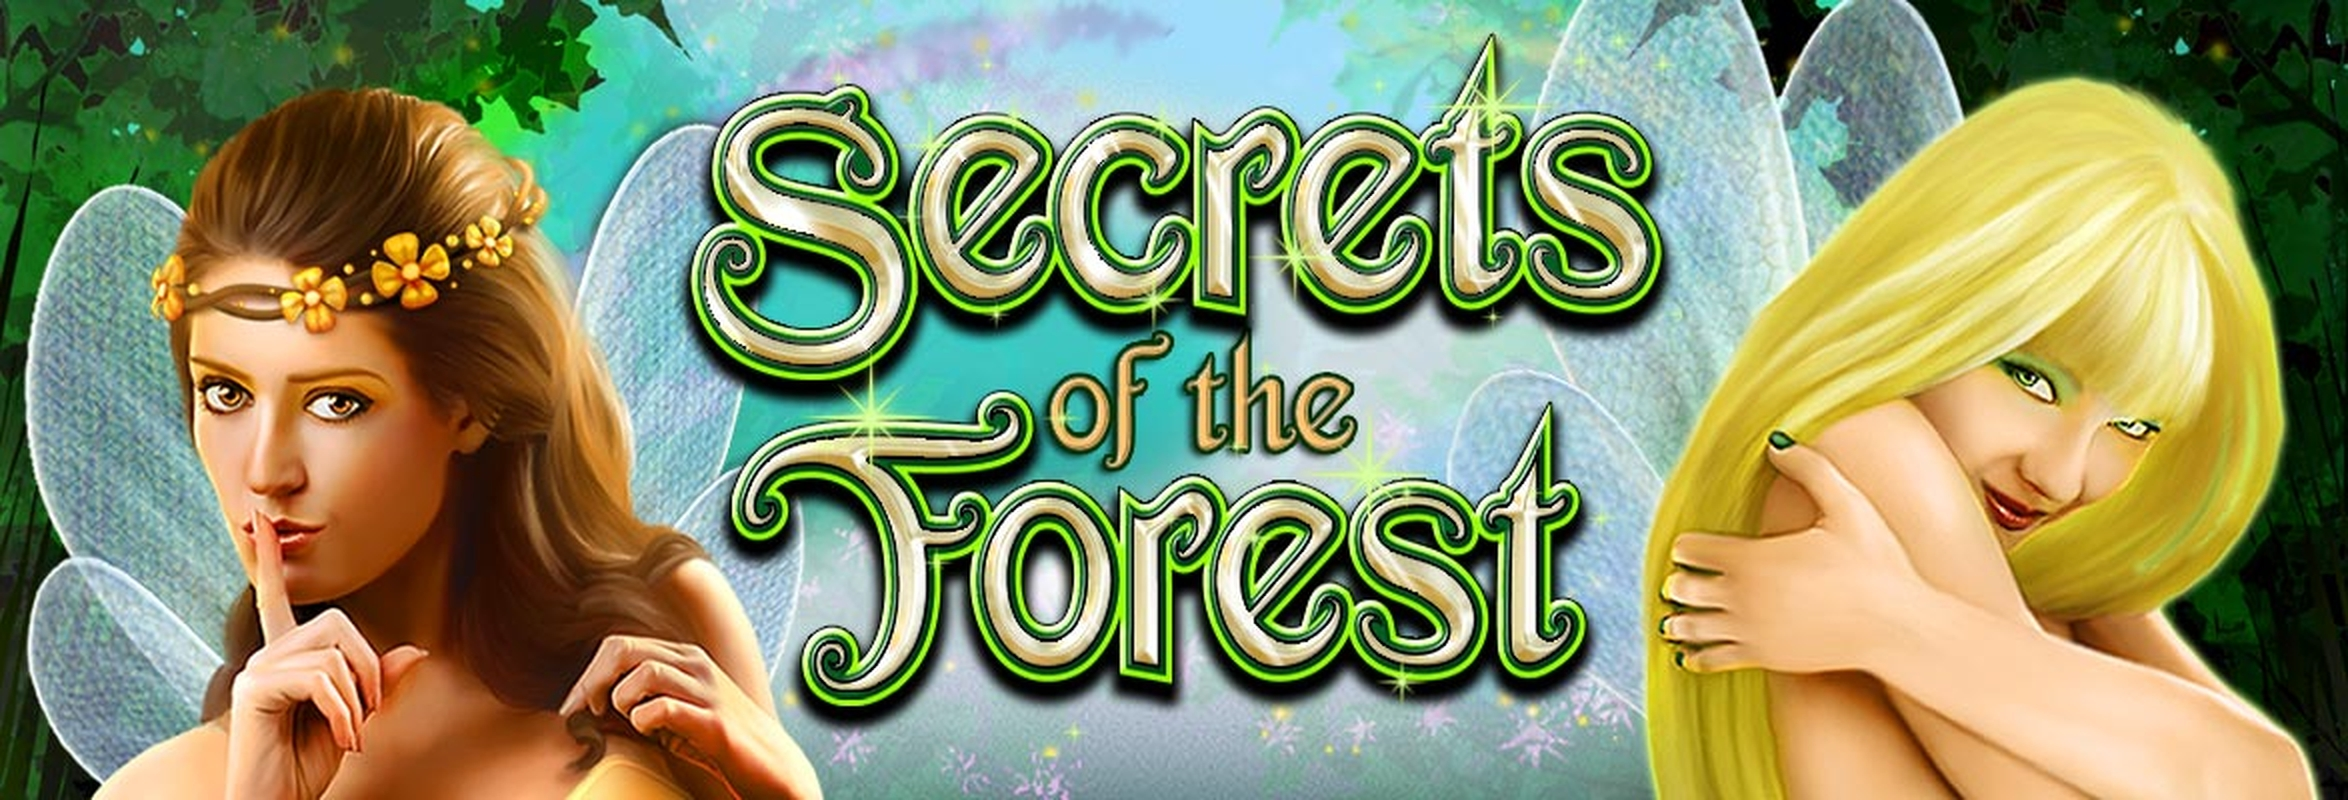 The Secrets Of The Forest Online Slot Demo Game by High 5 Games